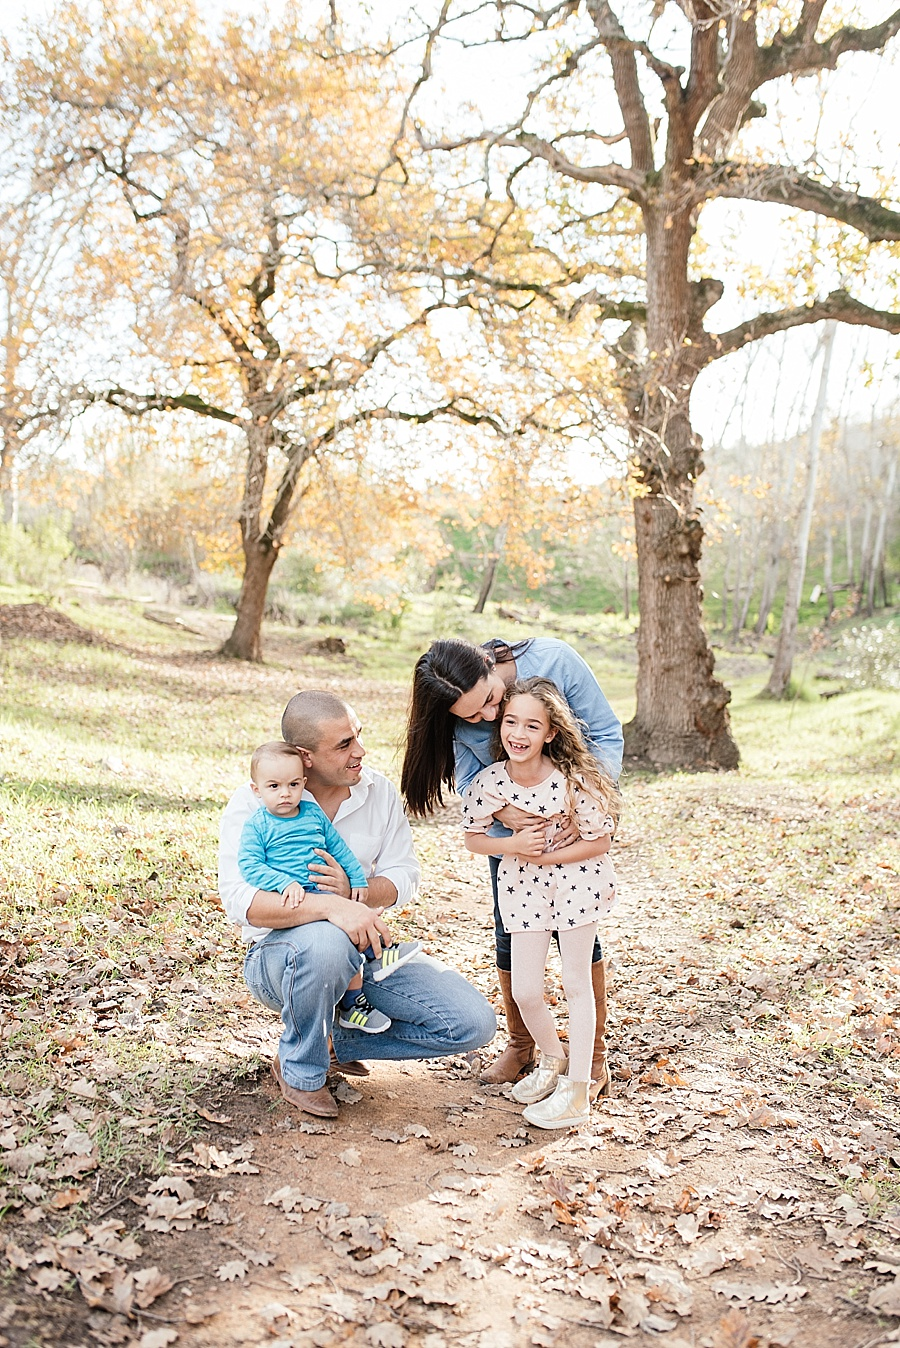 Cape Town Photographer - Family Shoot - Abrahams Family_0007.jpg